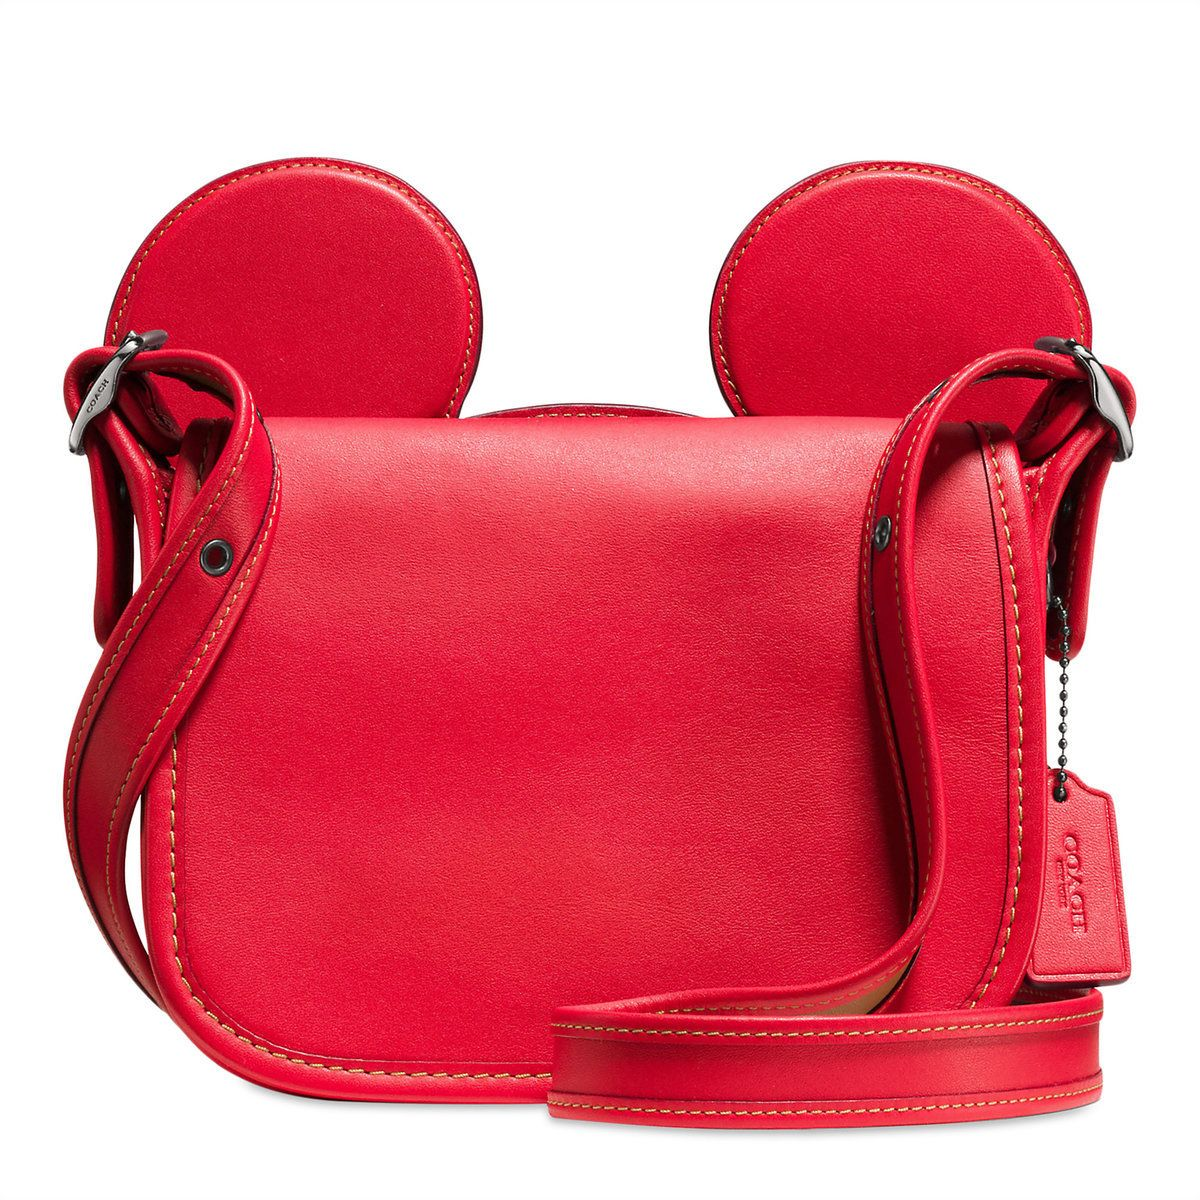 Leather Accent Tag - RED HEART by VIDA VIDA Cheap New Official Sale Online Popular Cheap Price el0obo